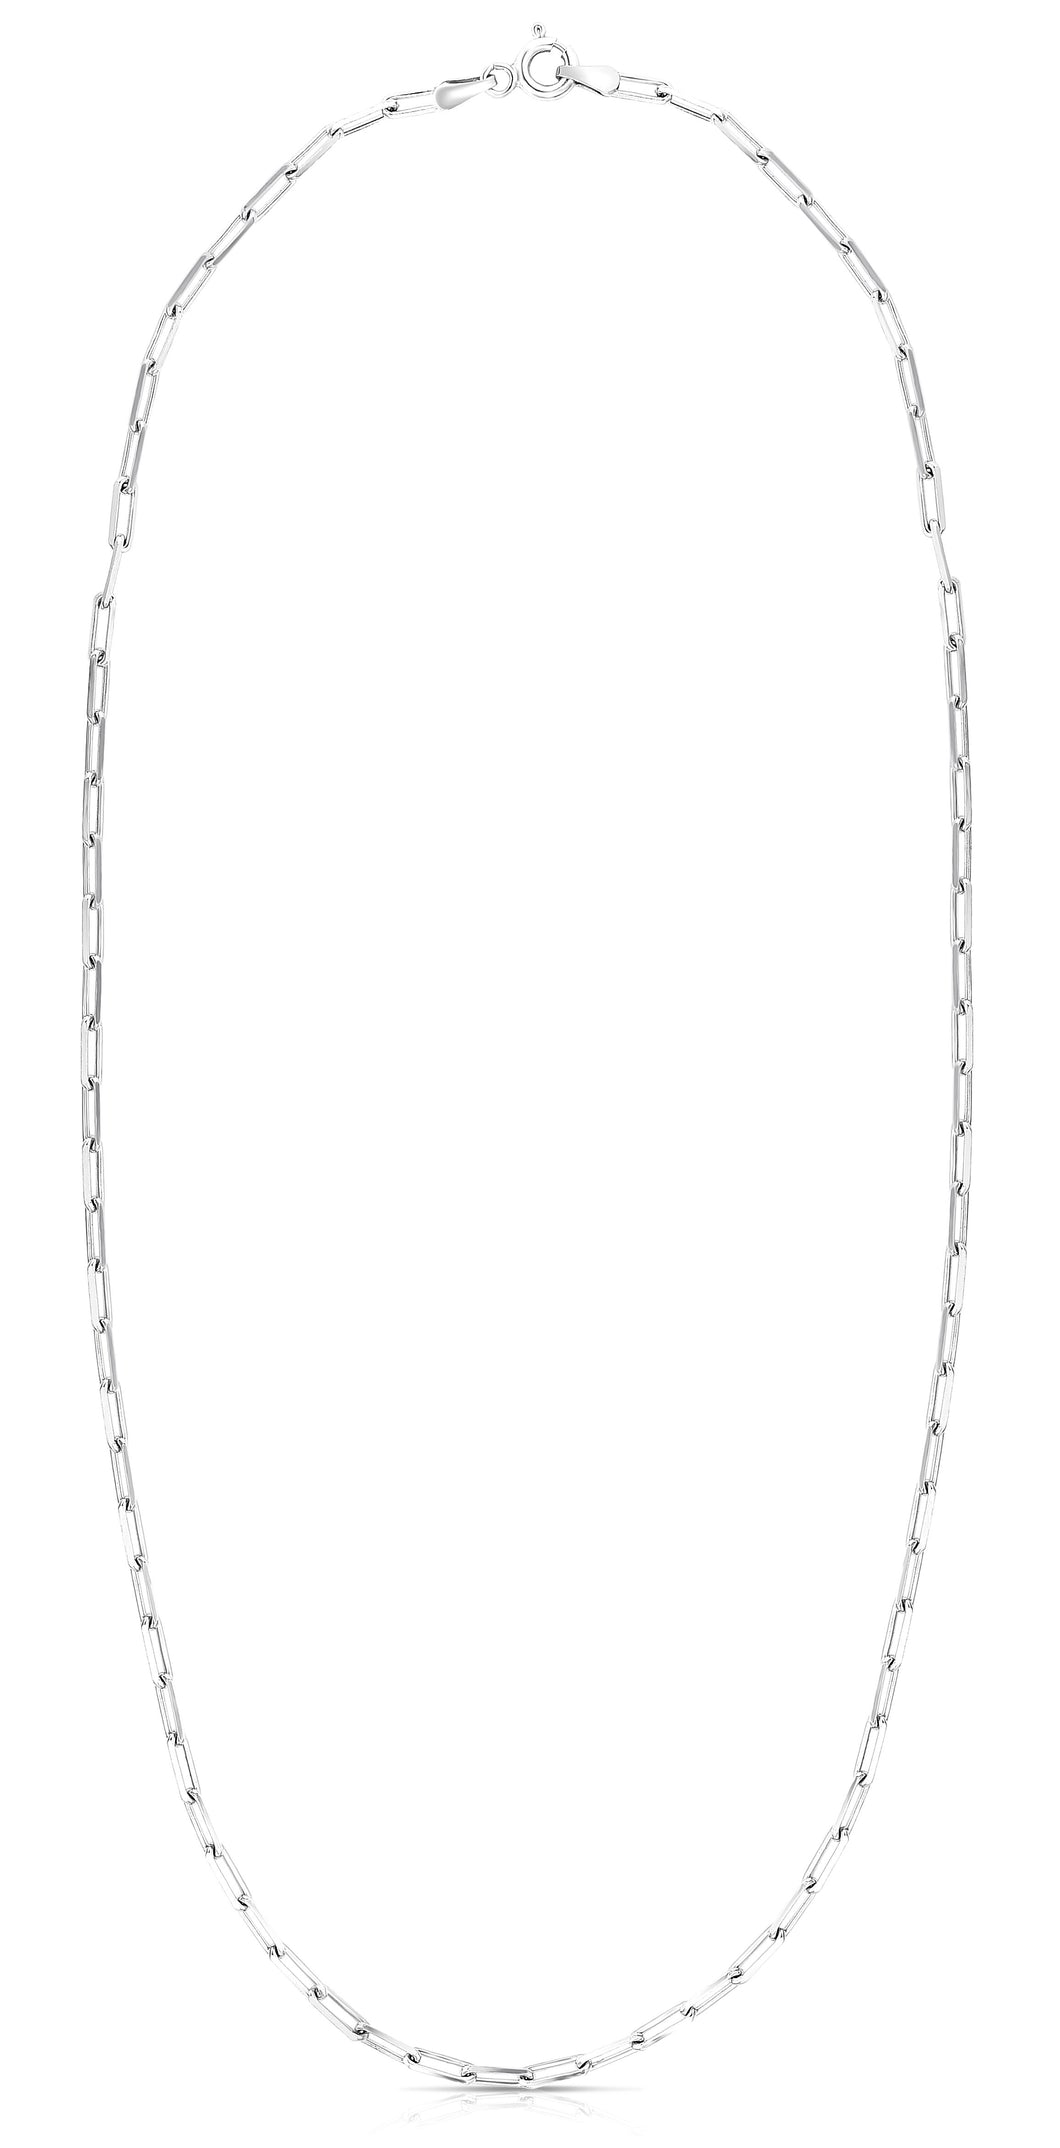 Diamond Cut Paperclip Necklace with Pear Shaped Lobster Clasp